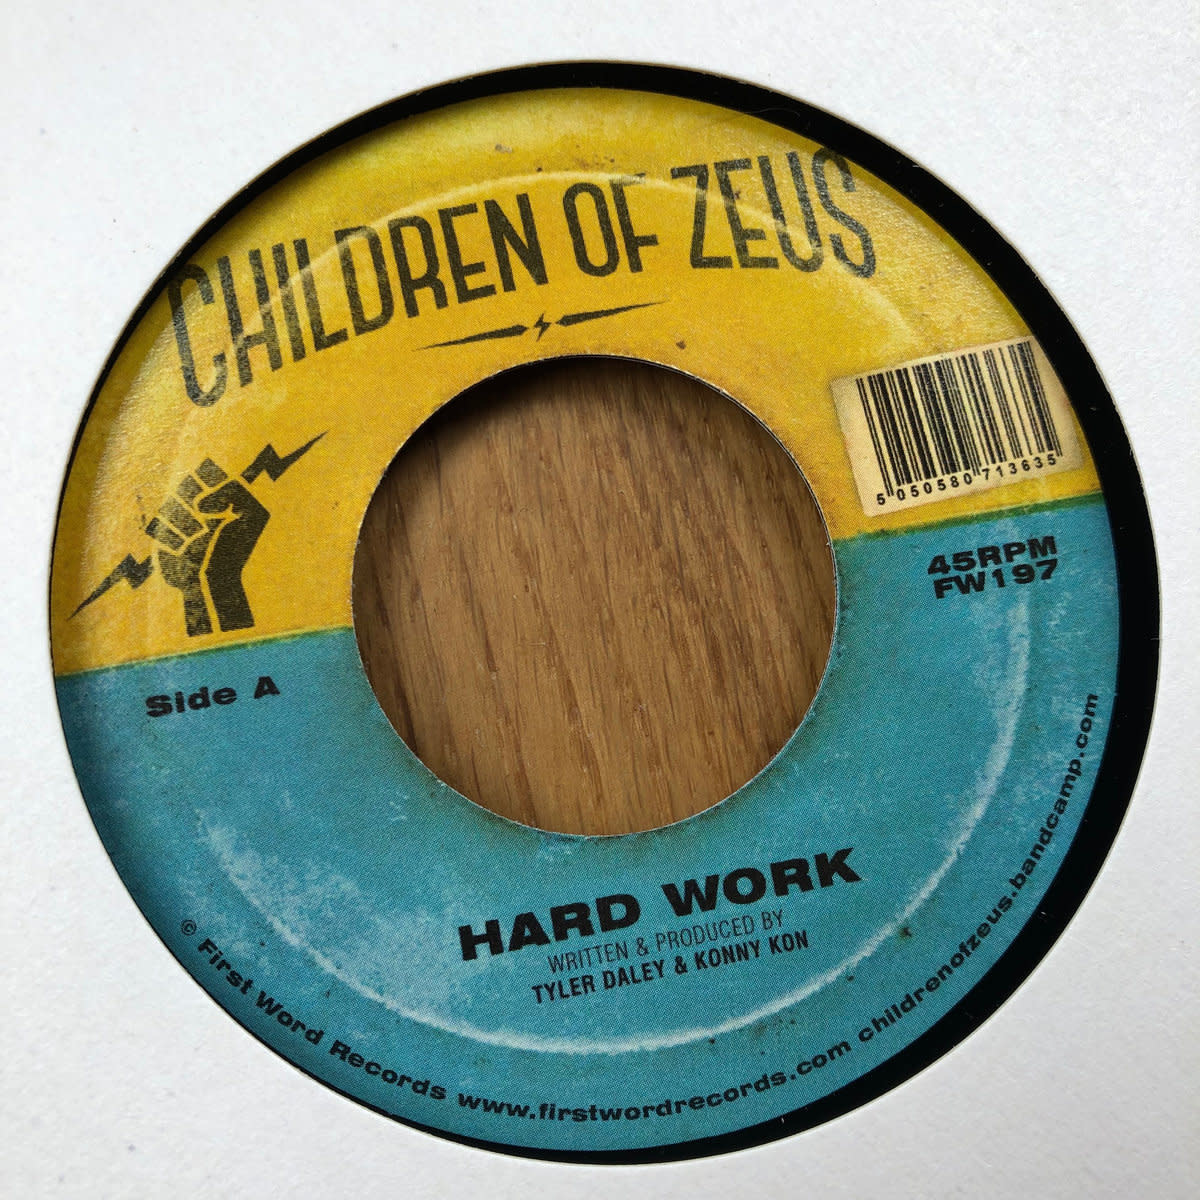 First Word Records Children Of Zeus - Hard Work / The Heart Beat Pt 2